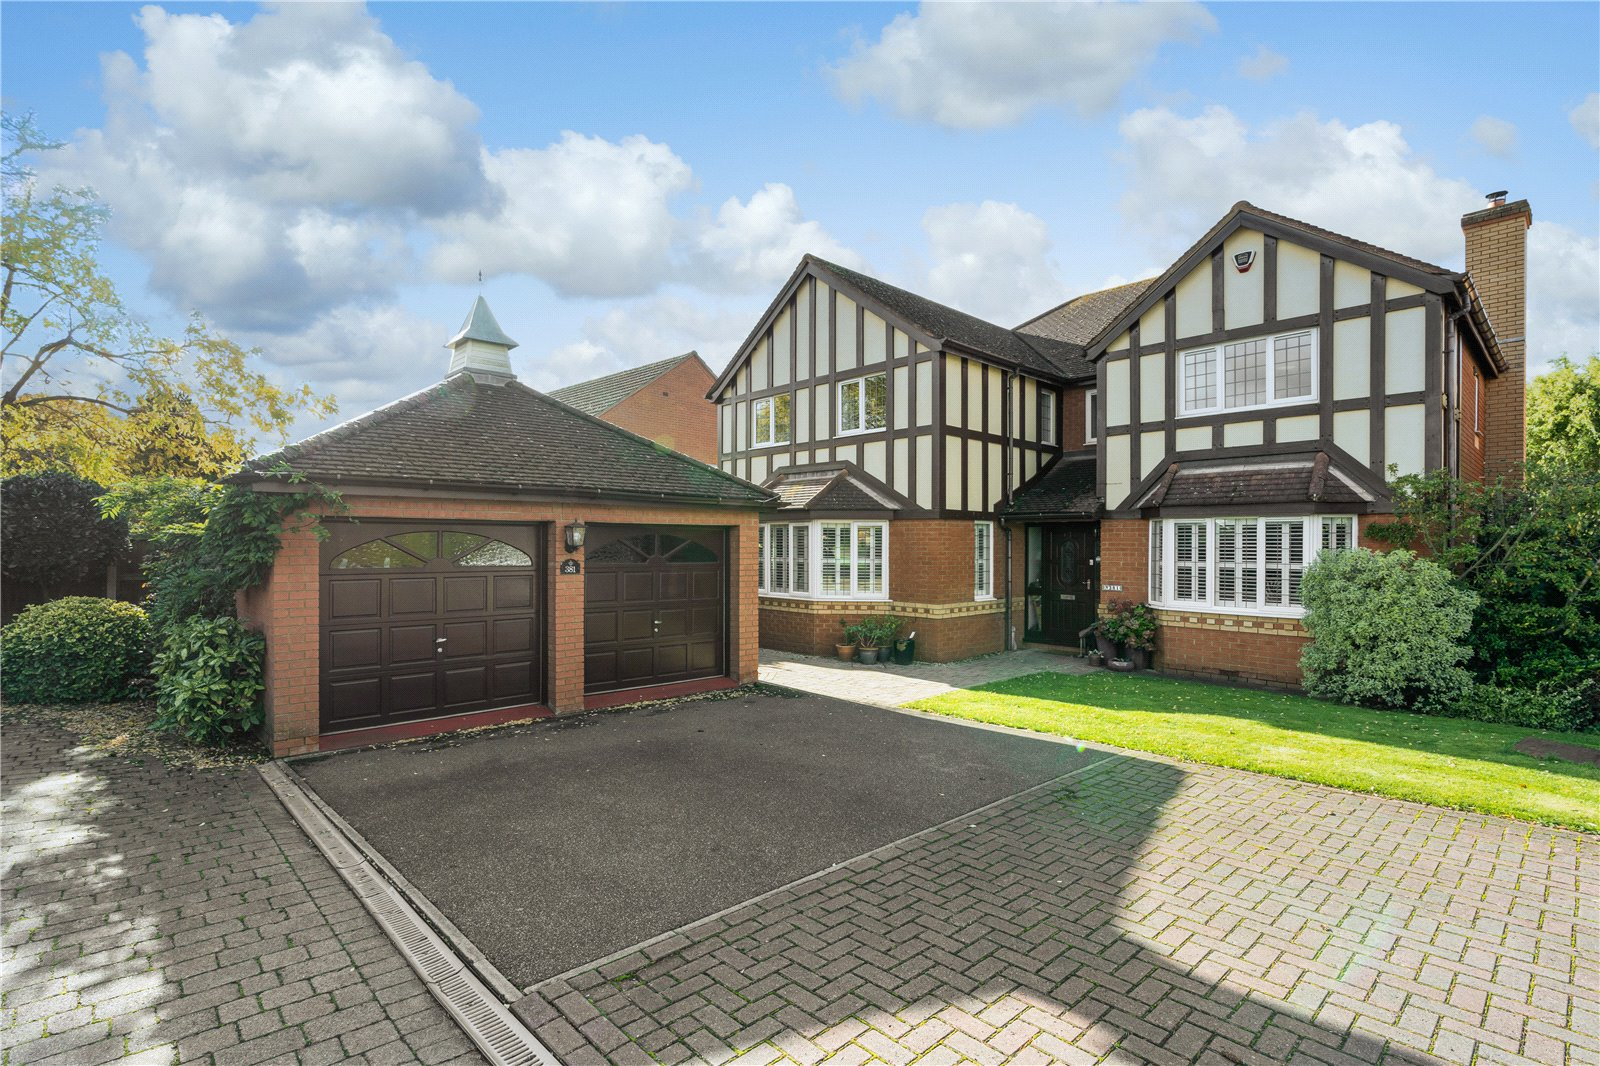 5 bed house for sale in Eaton Ford, PE19 7FP, PE19